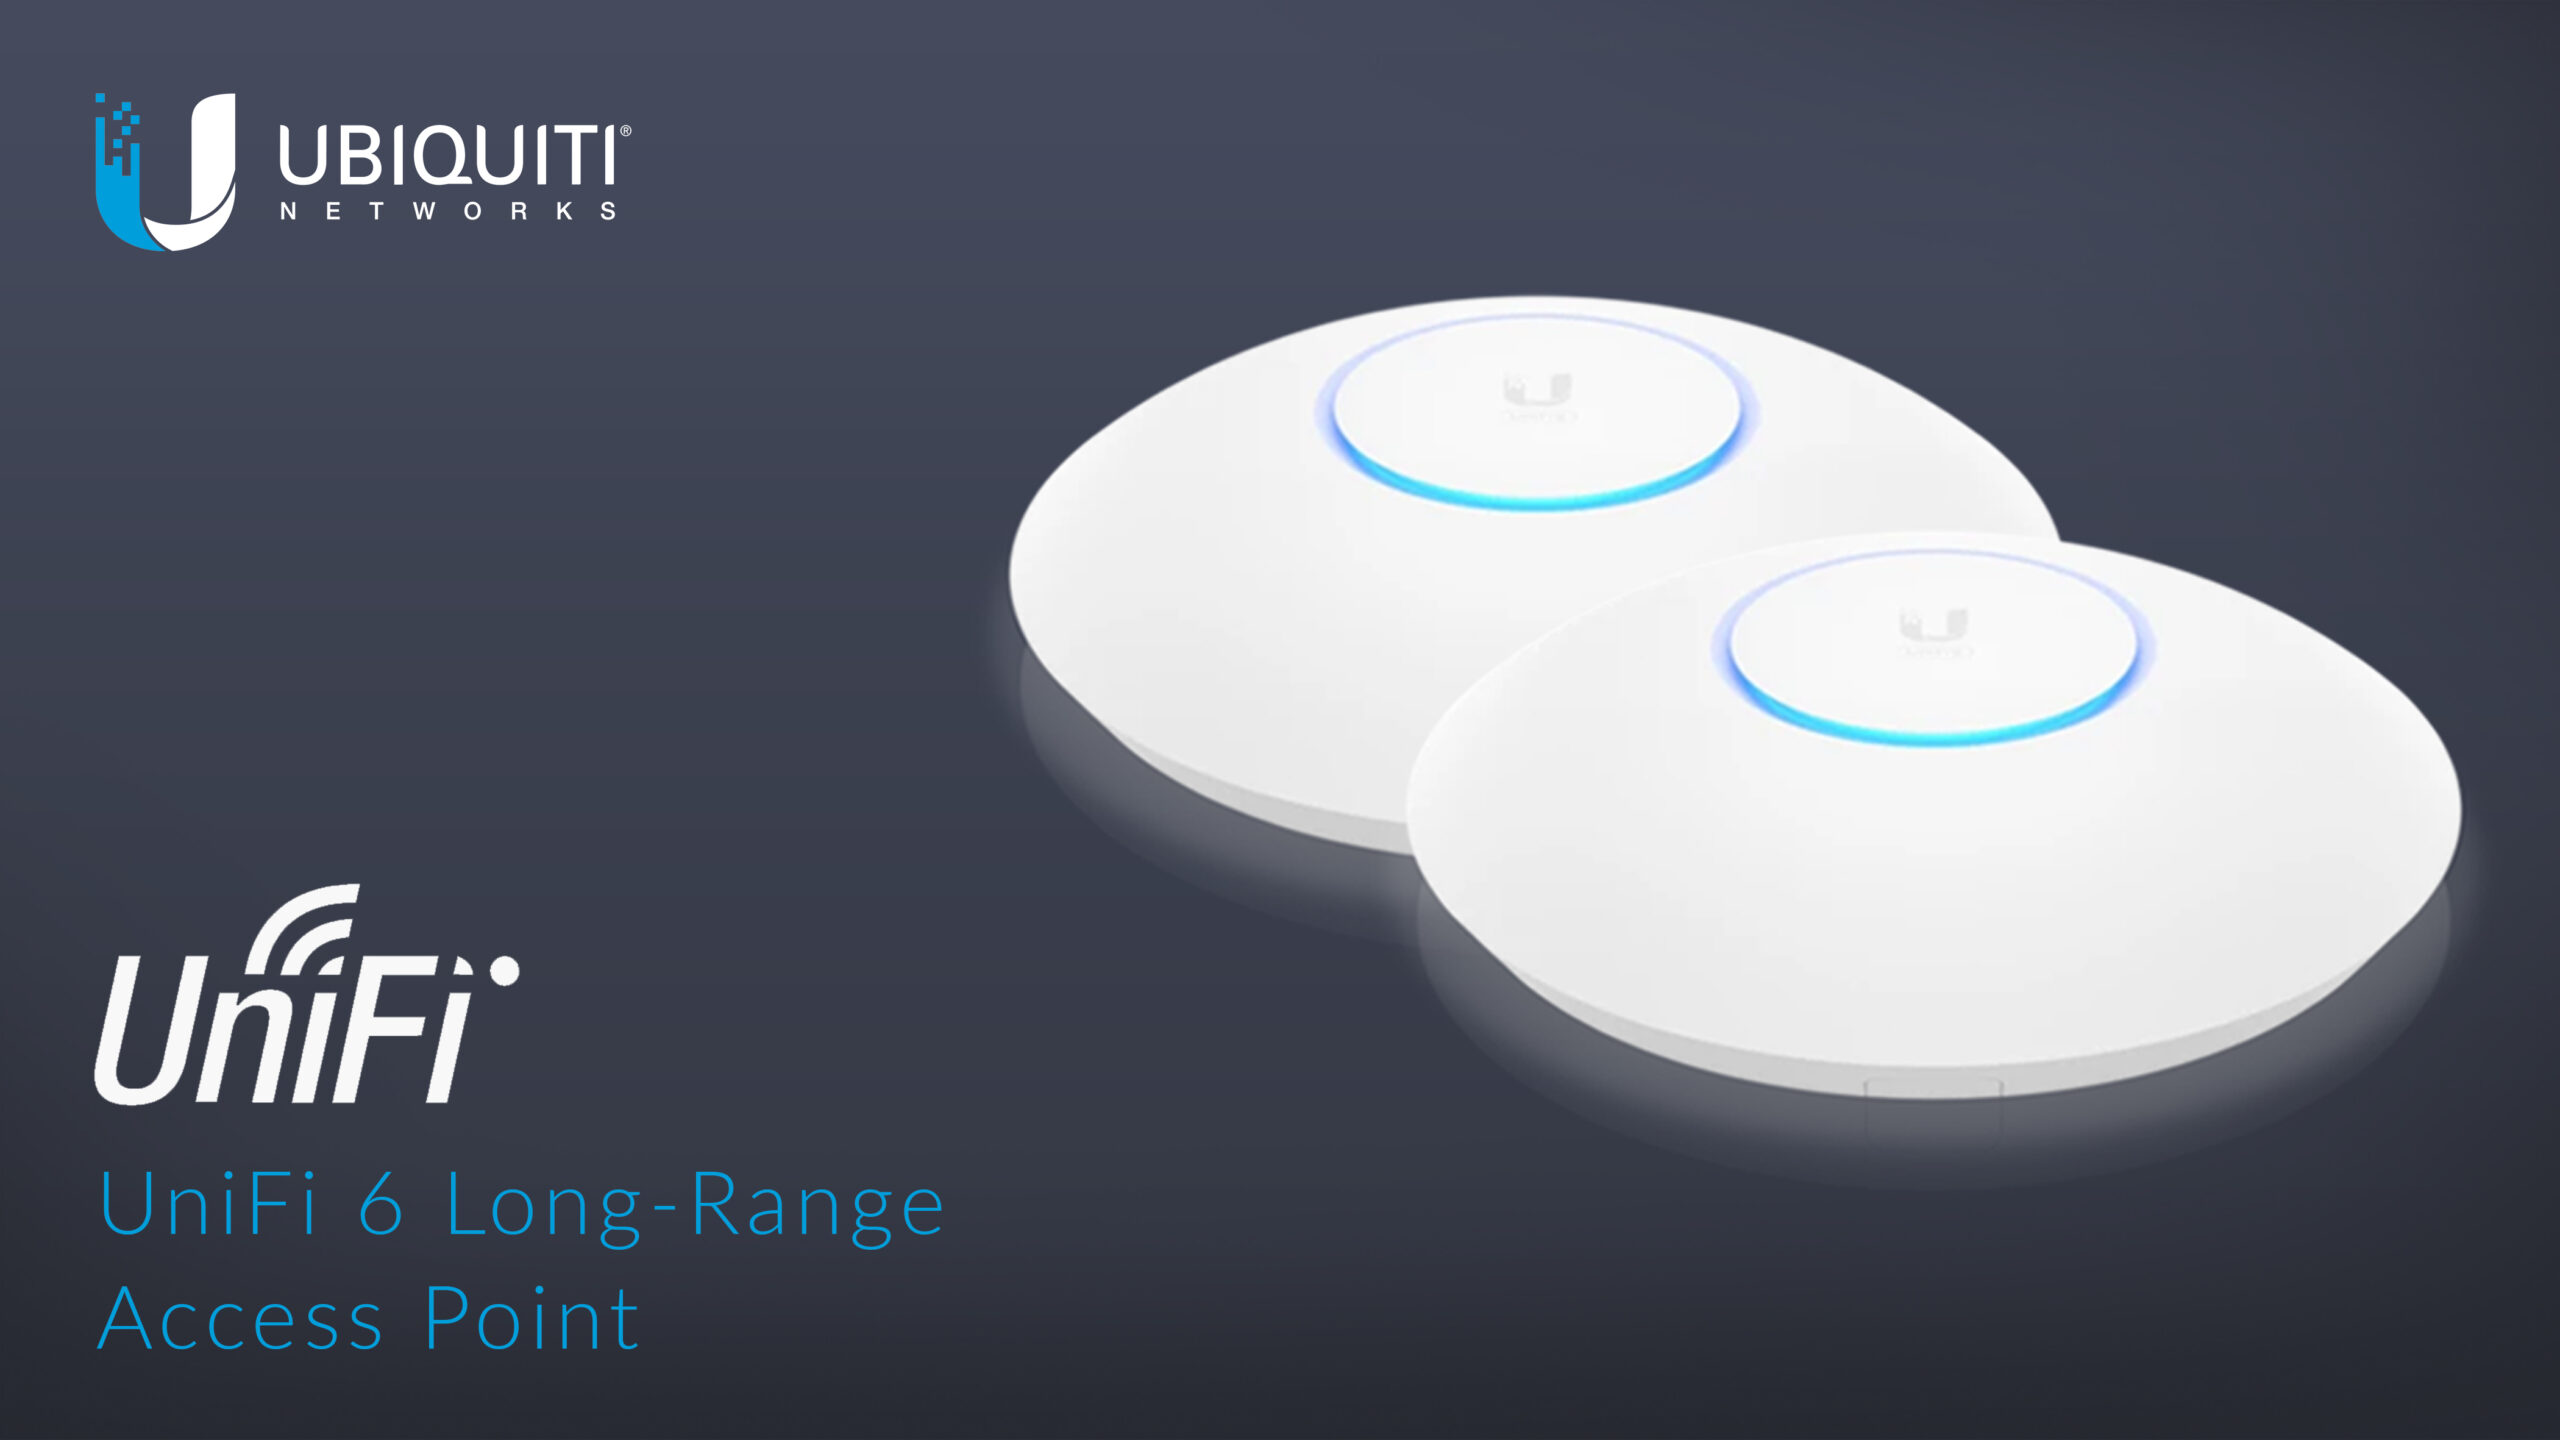 Ubiquiti UniFi 6 Long-Range Access Point